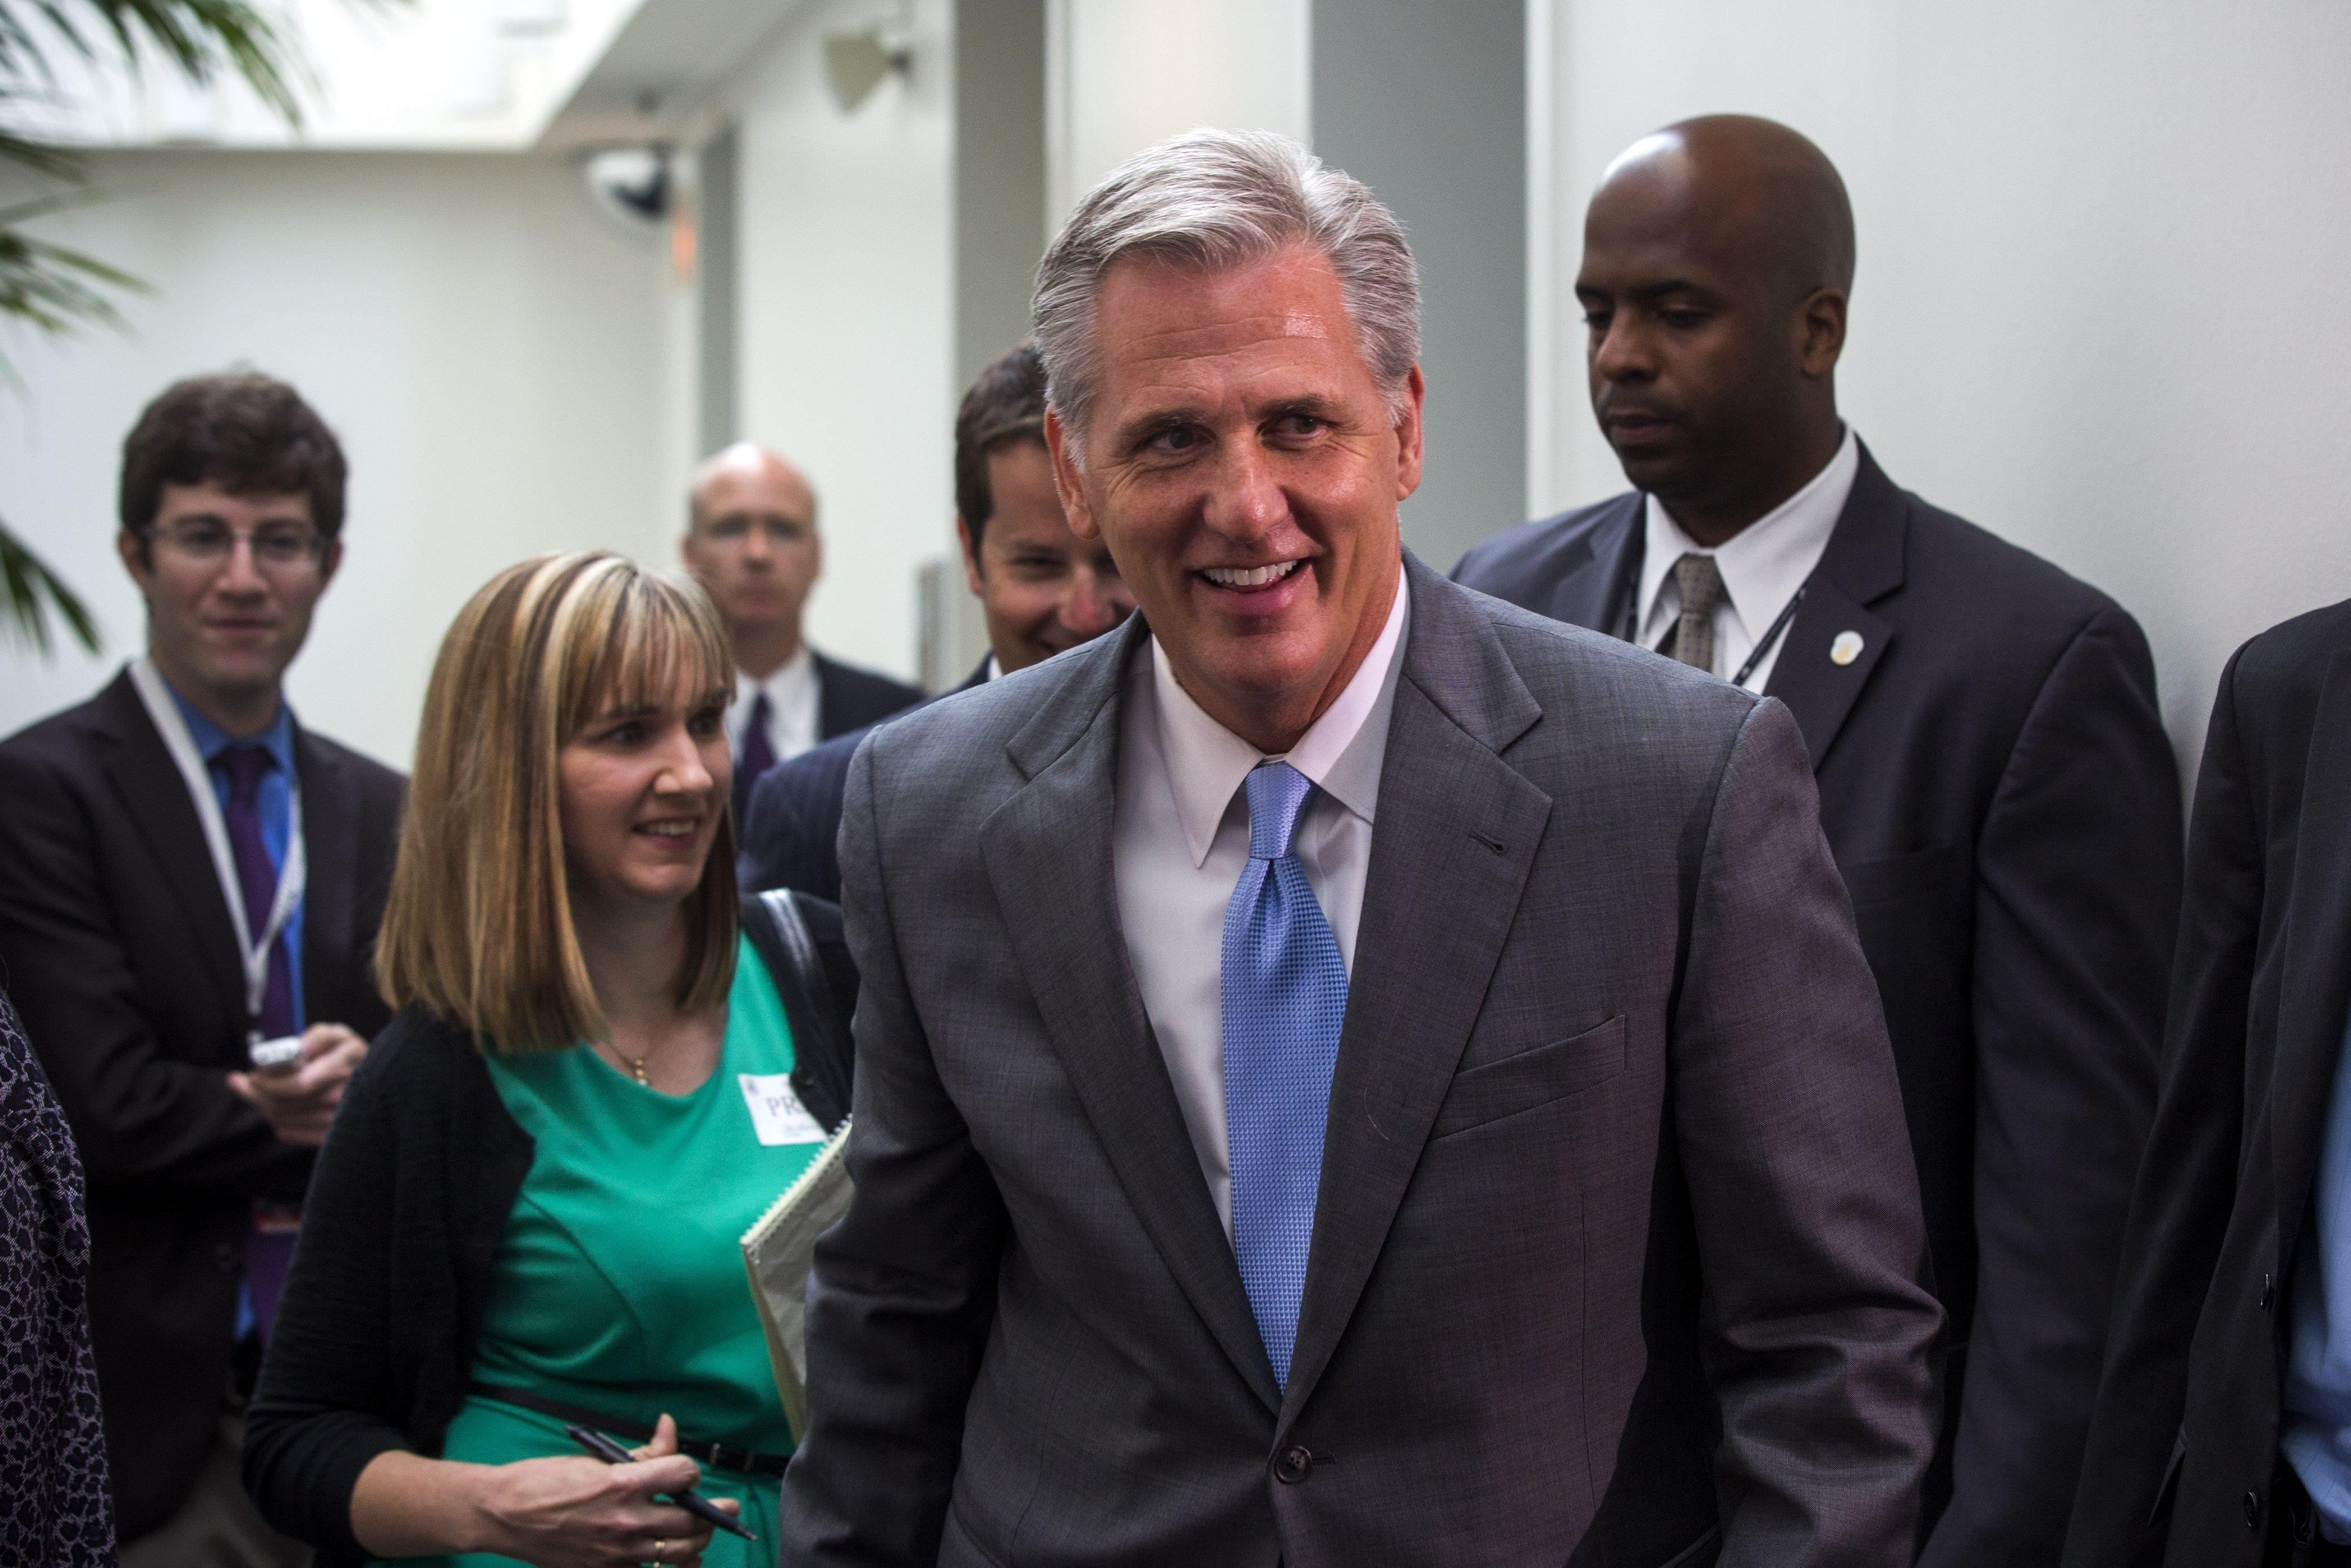 Image: Kevin McCarthy Attends Leadership Meeting at Capitol